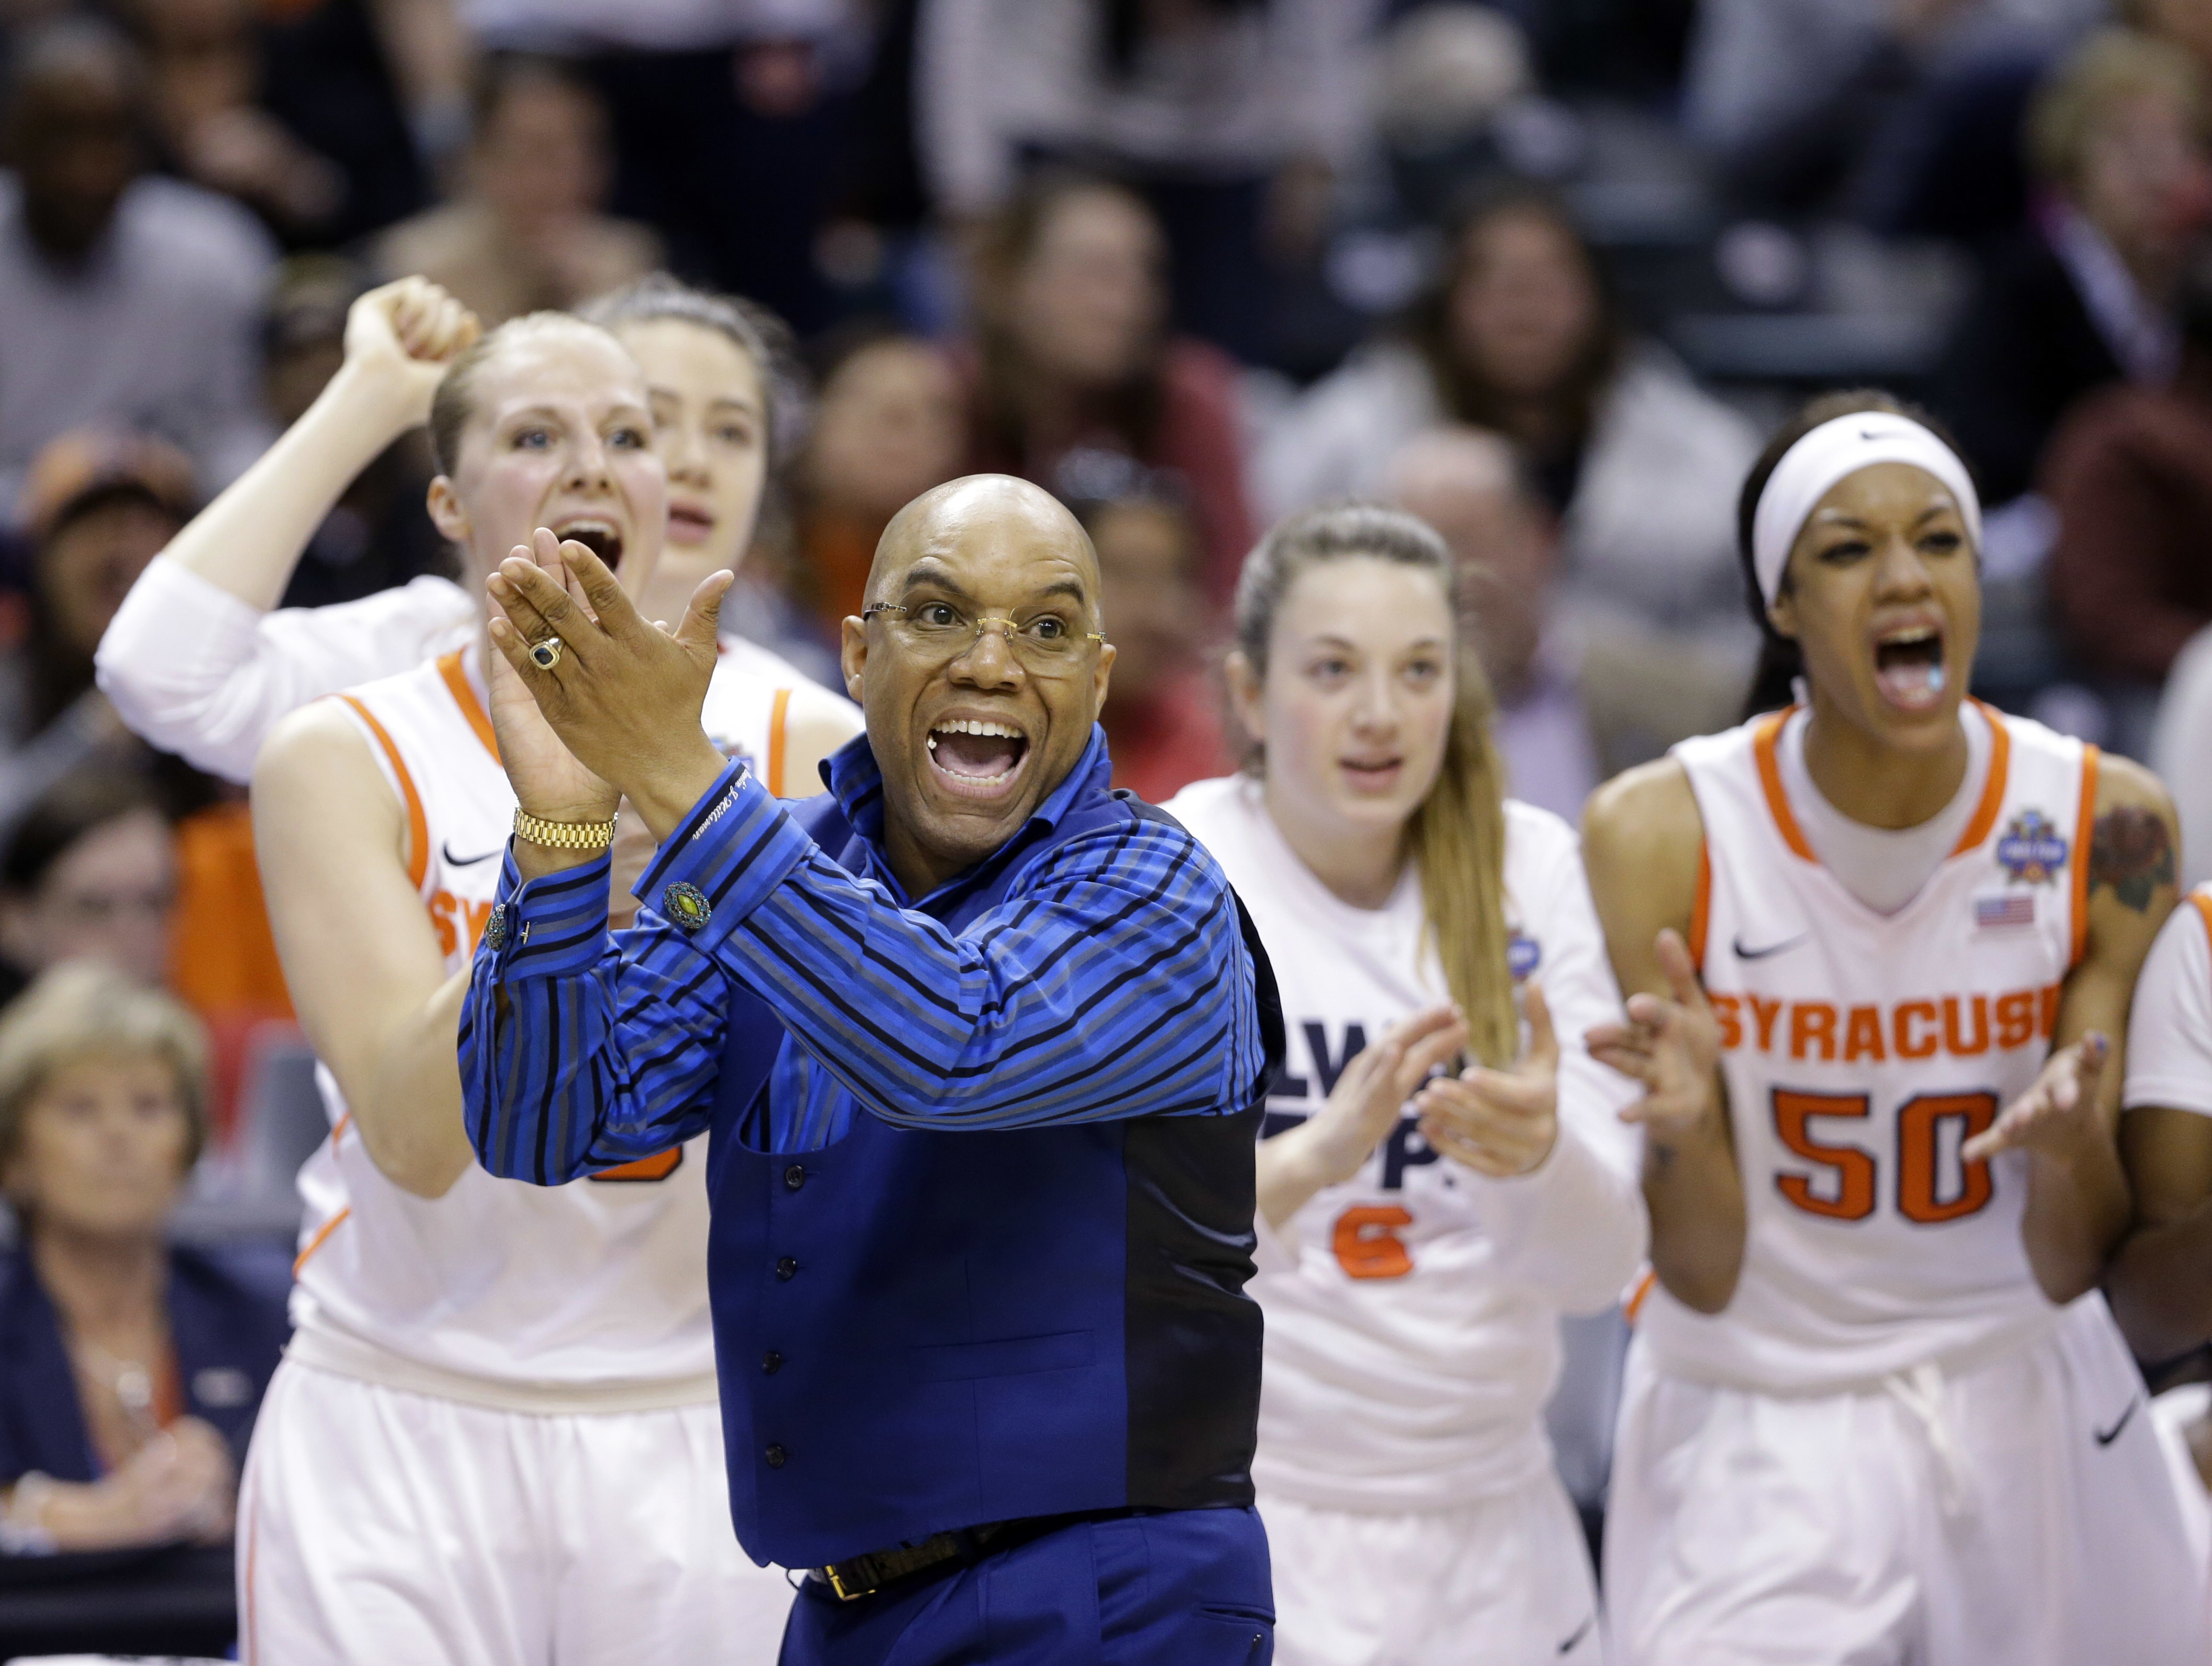 FILE - In this April 3, 2016, file photo, Syracuse head coach Quentin Hillsman cheers during the second half of a national semifinal game against Washington at the women's Final Four in the NCAA college basketball tournament in Indianapolis. Taking Syracu